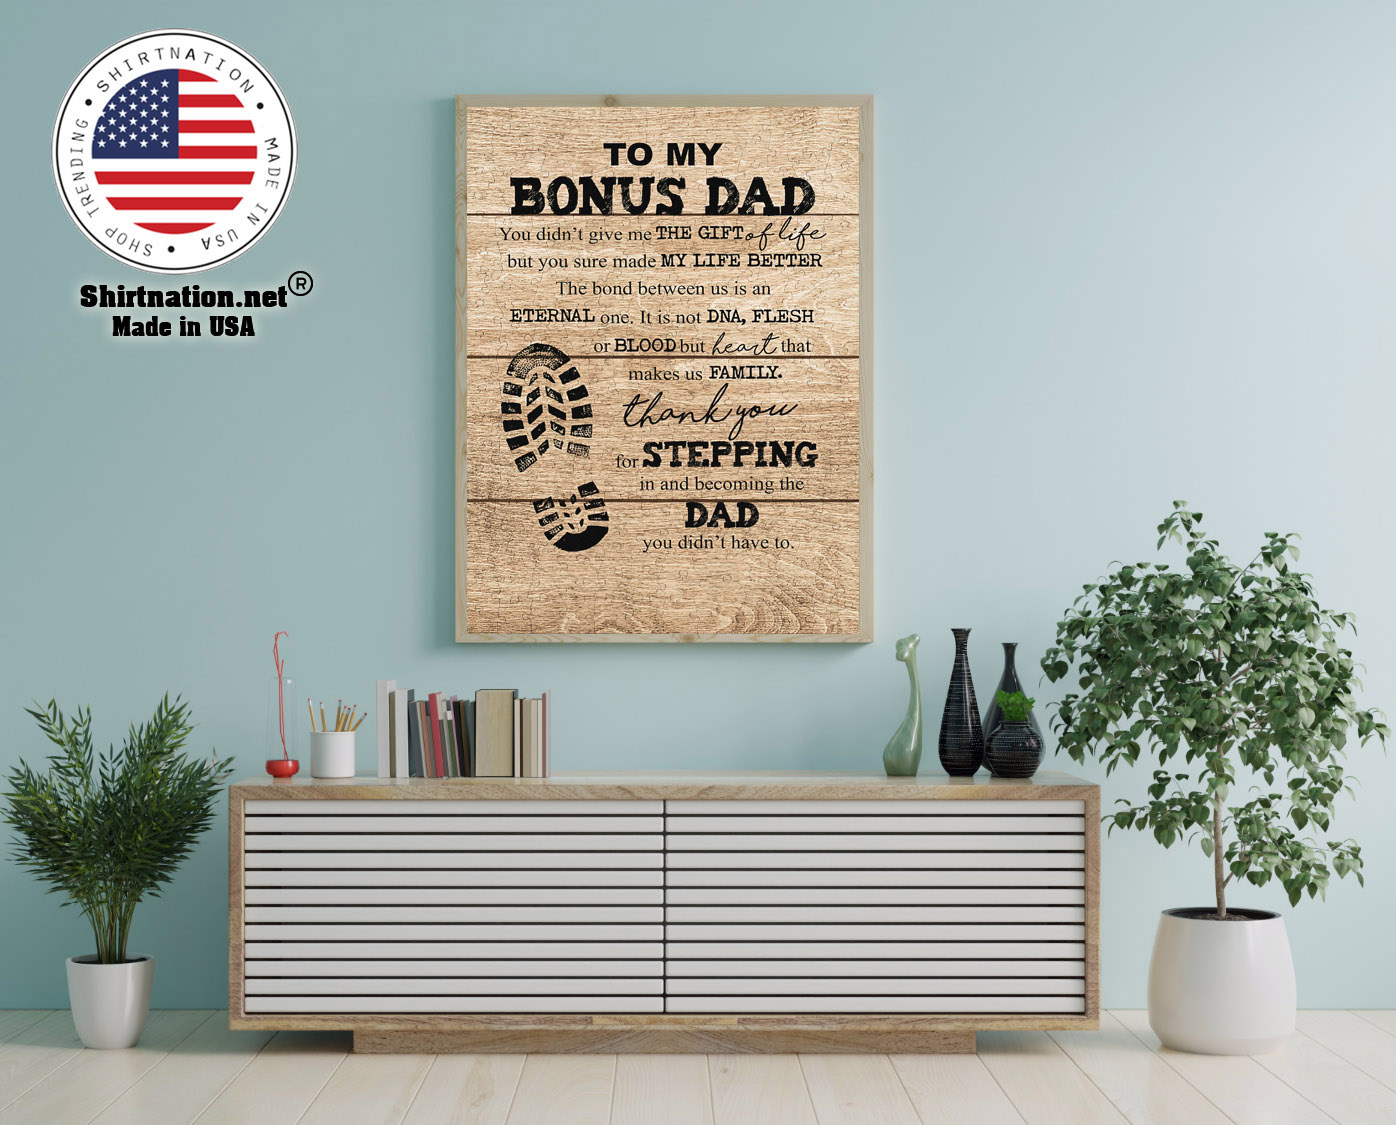 To my bonus dad you didnt give me the gift of life but you sure made my life better poster 12